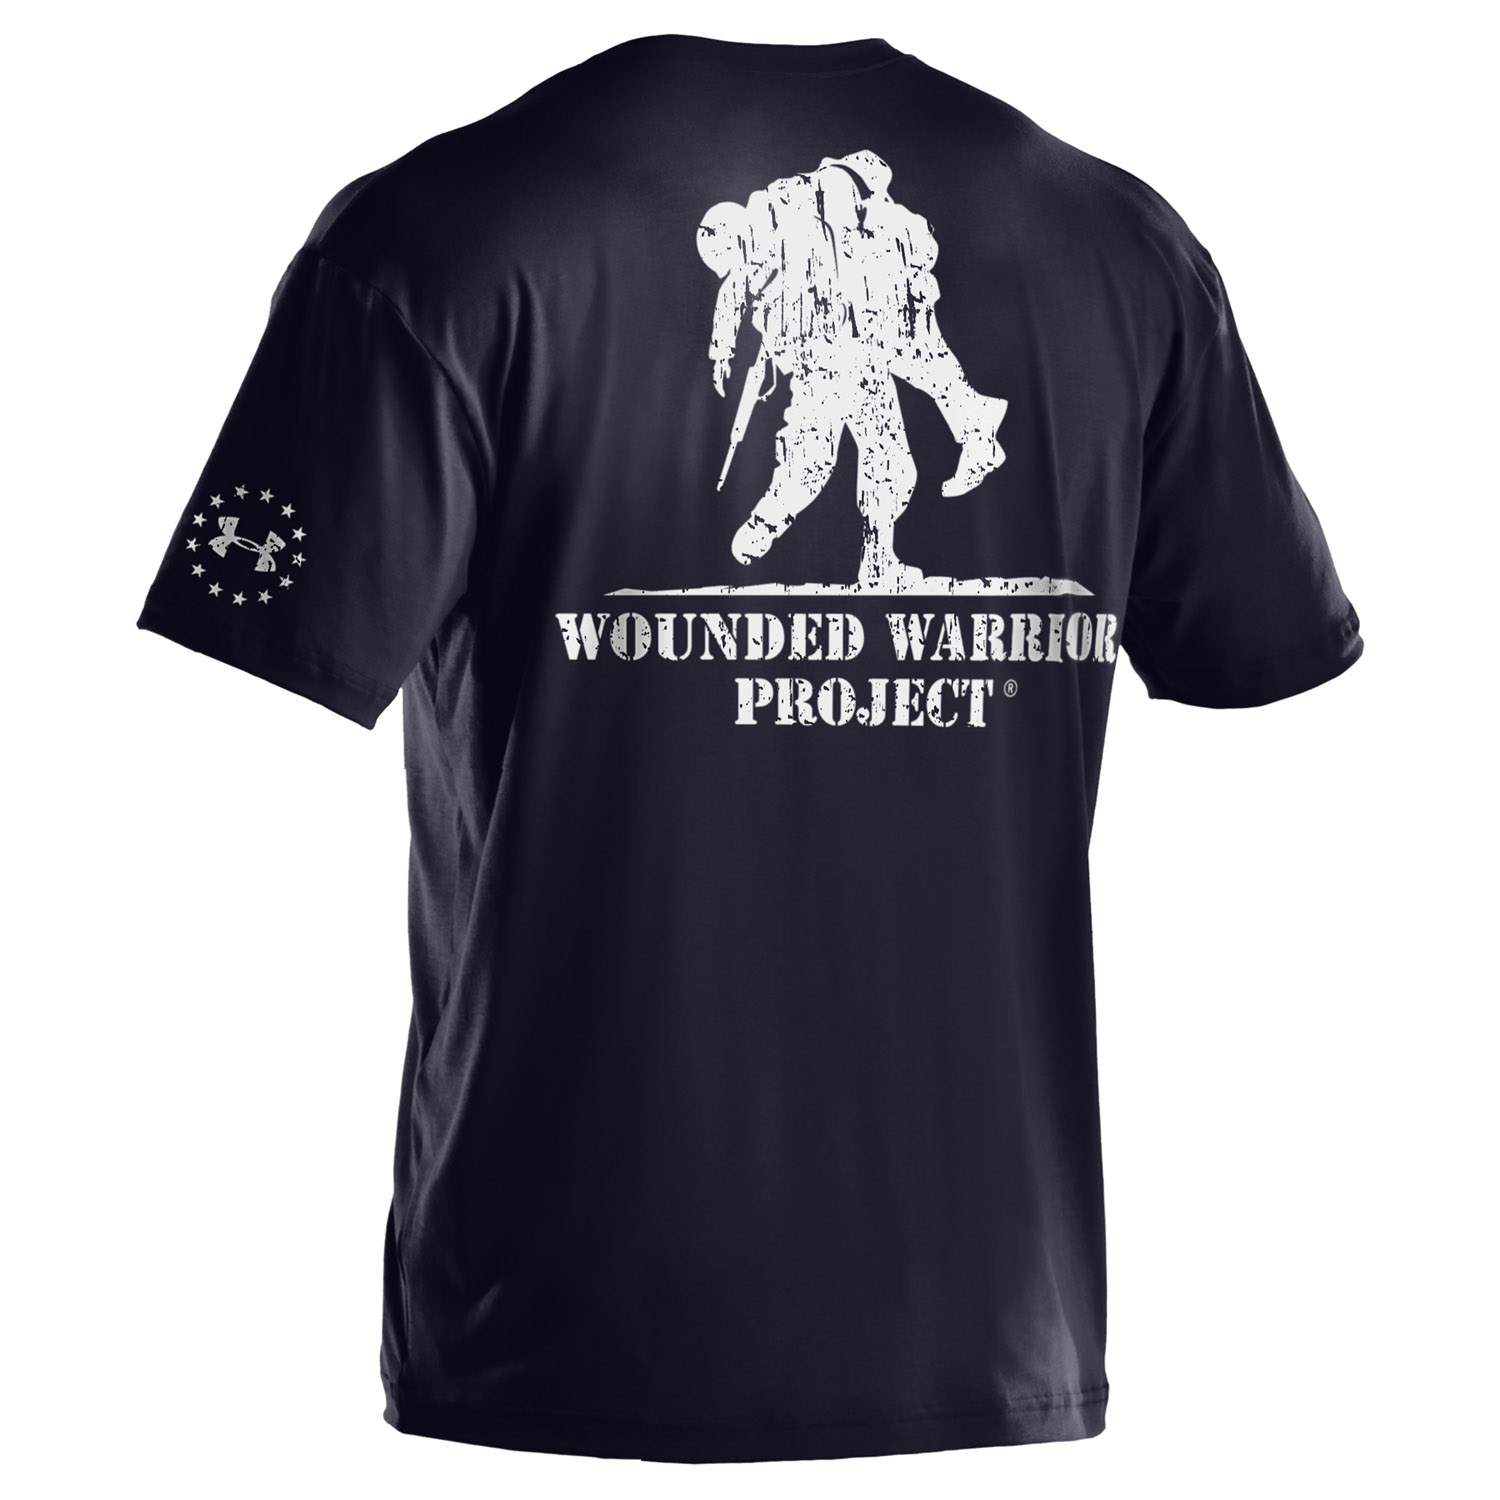 wounded warrior project apparel A three-part cbs news investigation into the wounded warrior project looks at how the charity spends its donation money.